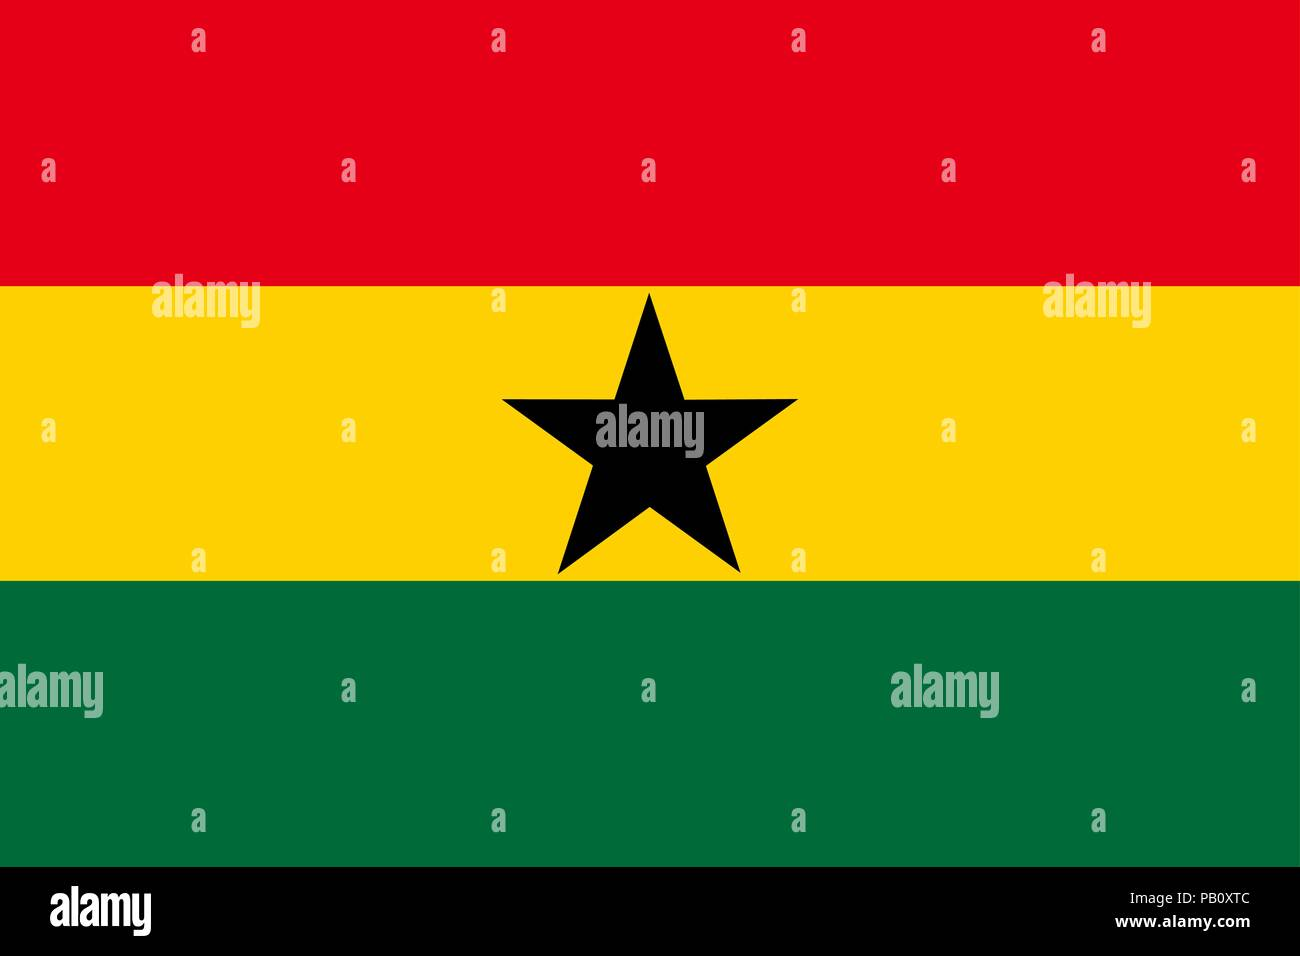 Flag of Ghana. Symbol of Independence Day, souvenir sport game, button language, icon. - Stock Vector